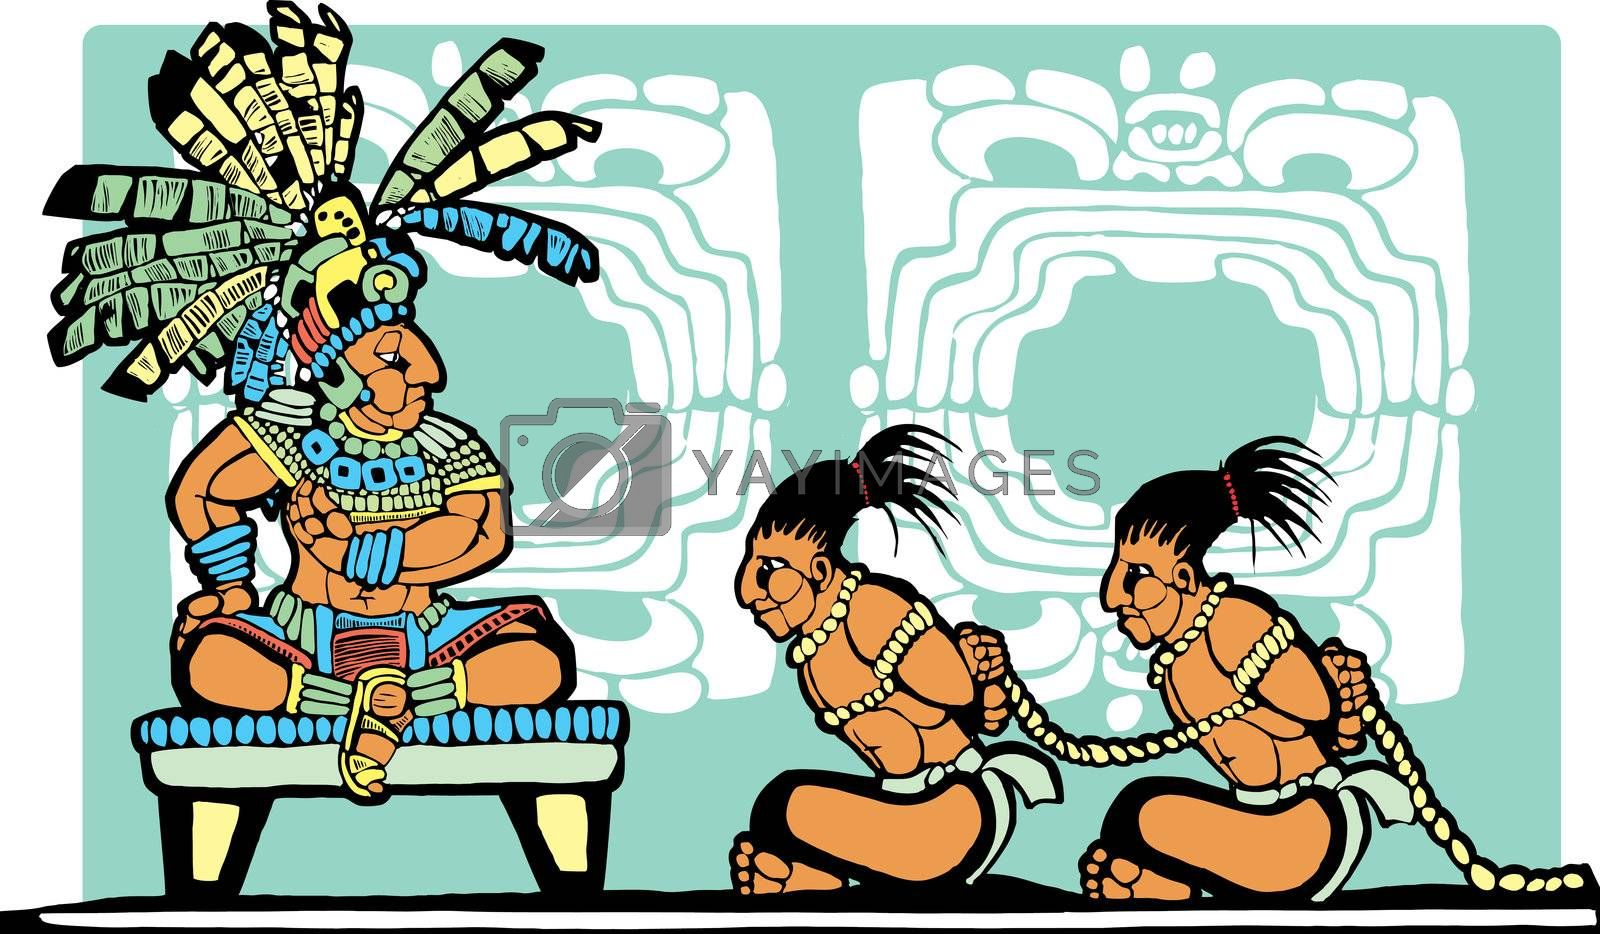 Mayan King on throne looks over war prisoners.